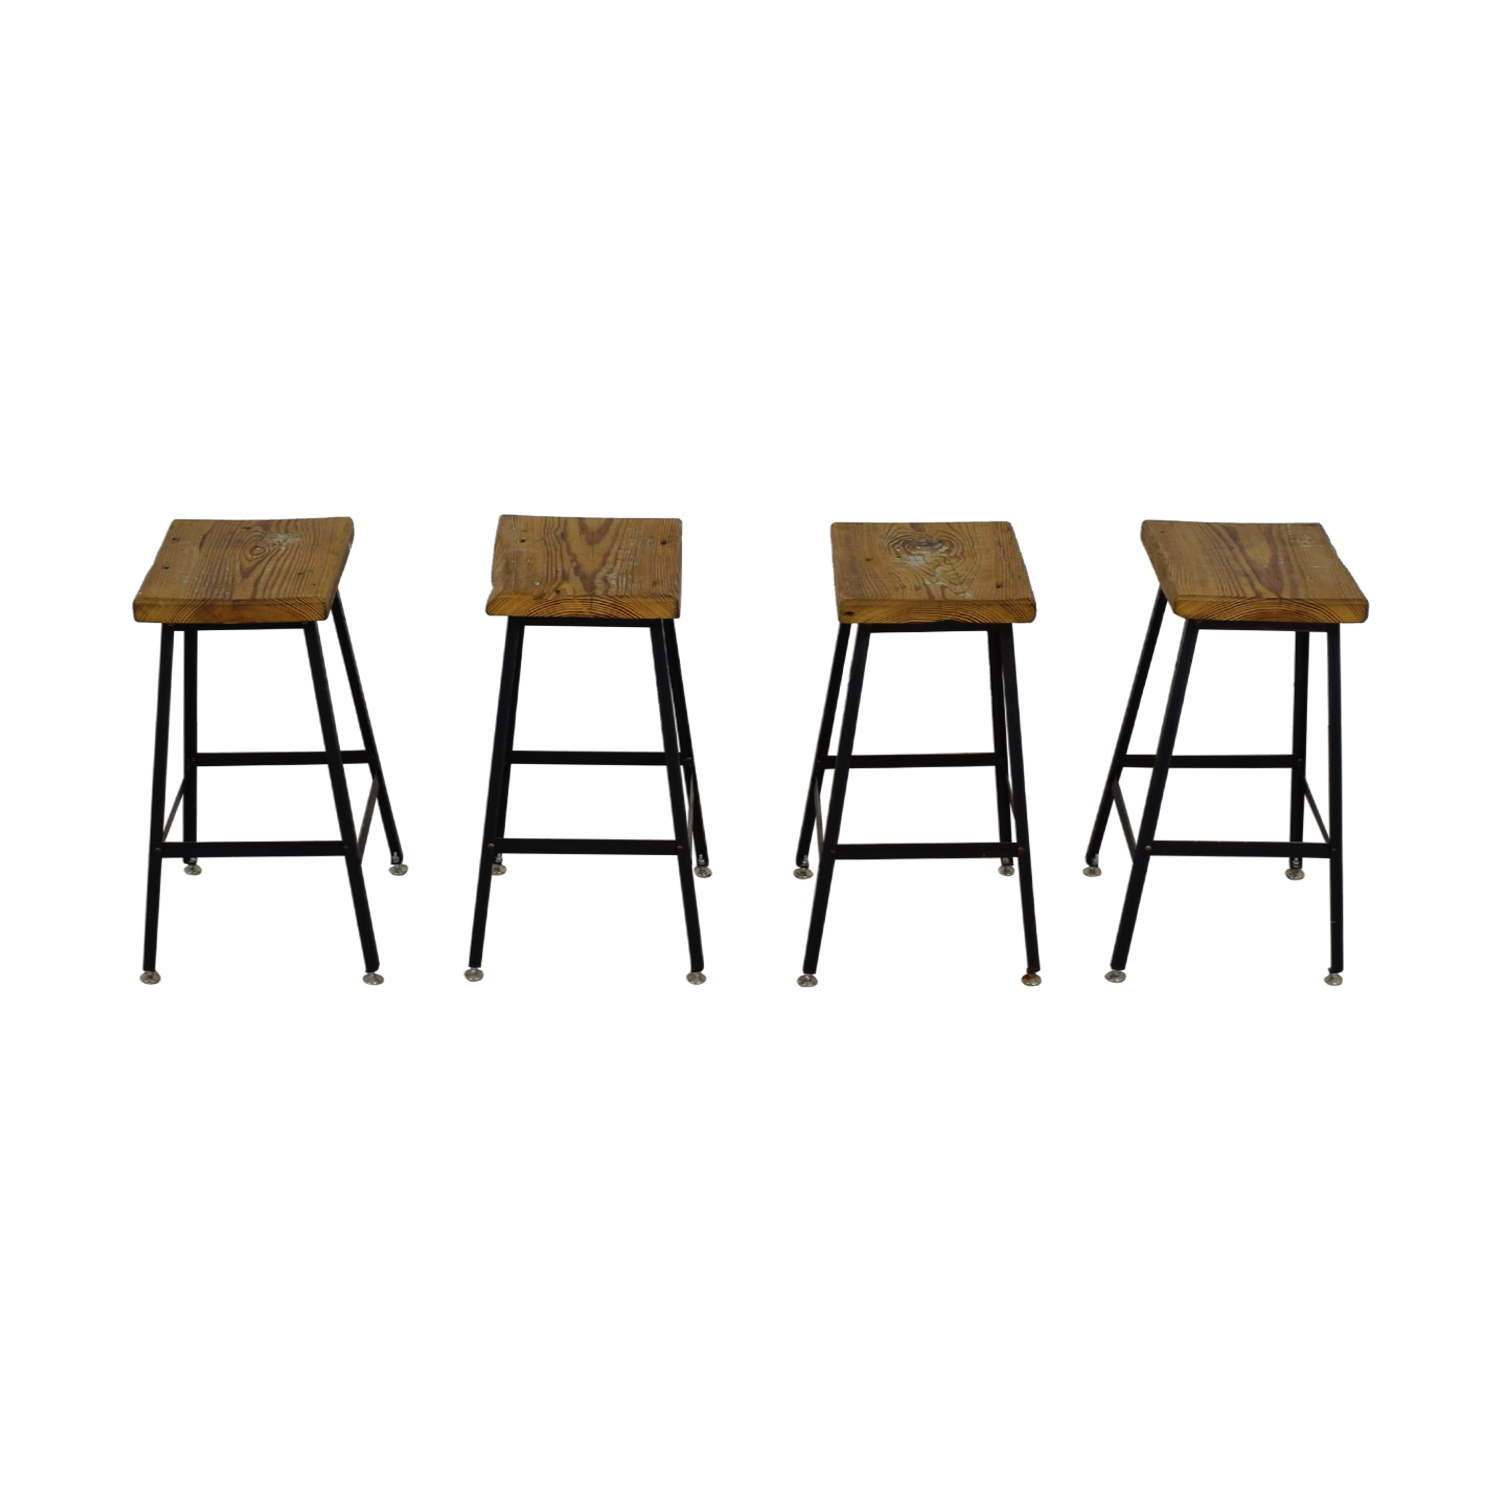 Urban Wood Goods Urban Wood Goods Reclaimed Wood Bar Stools